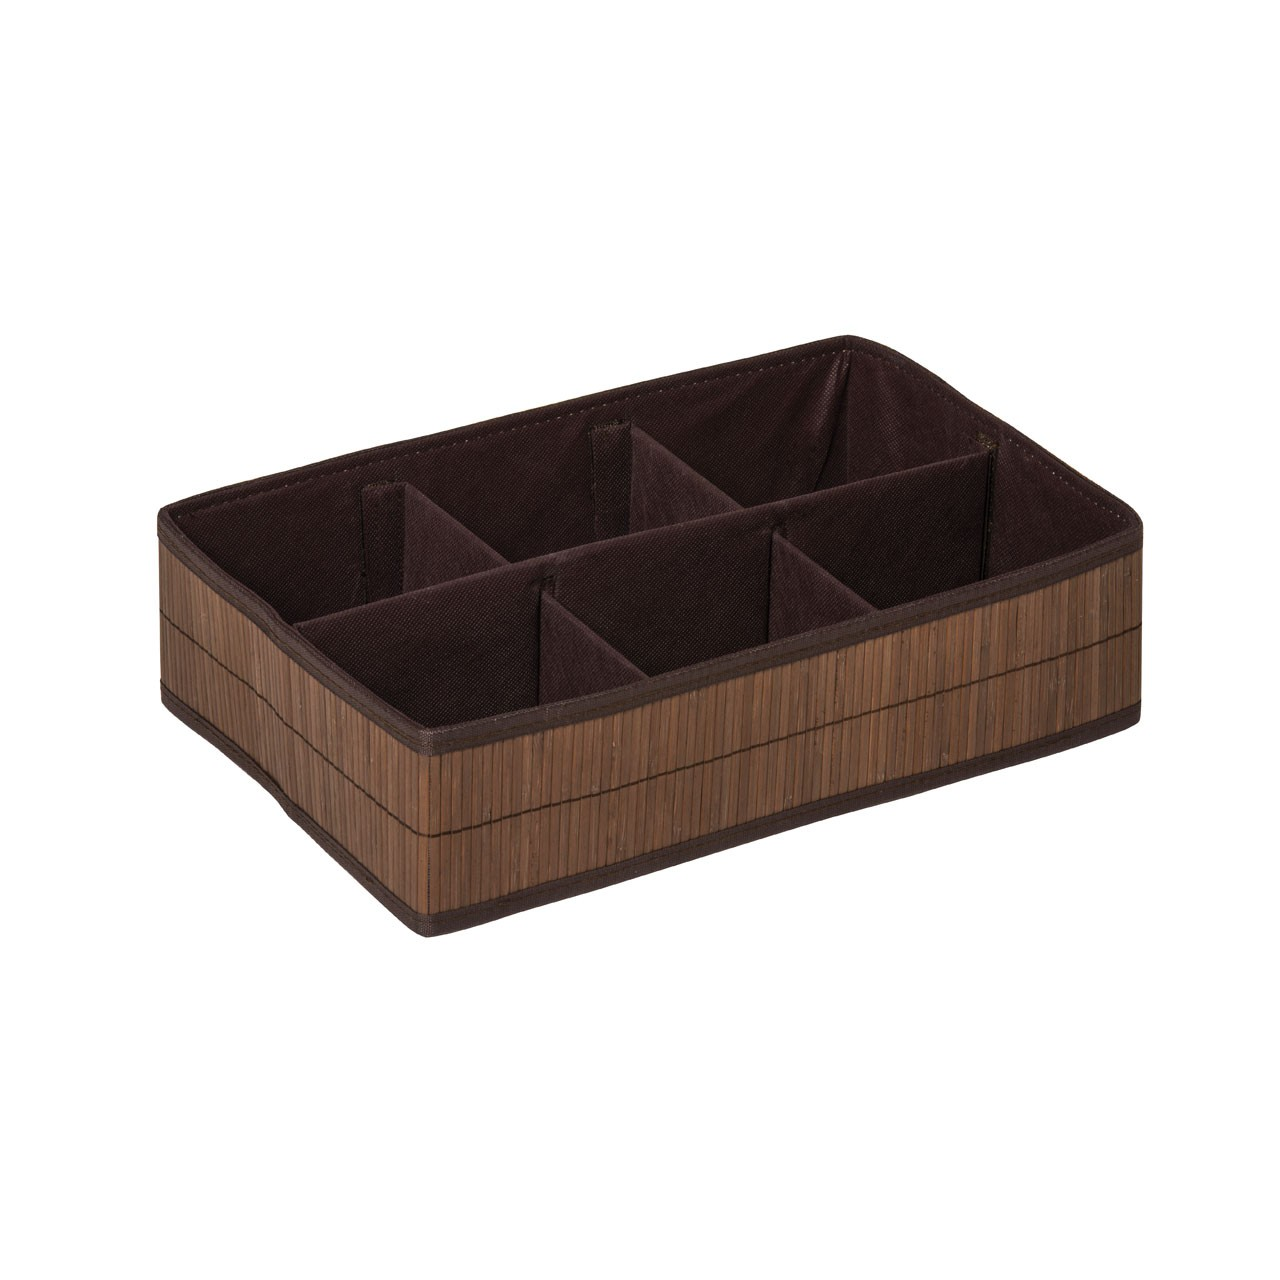 Prime Furnishing Kankyo 6 Sections Storage Box - Dark Brown